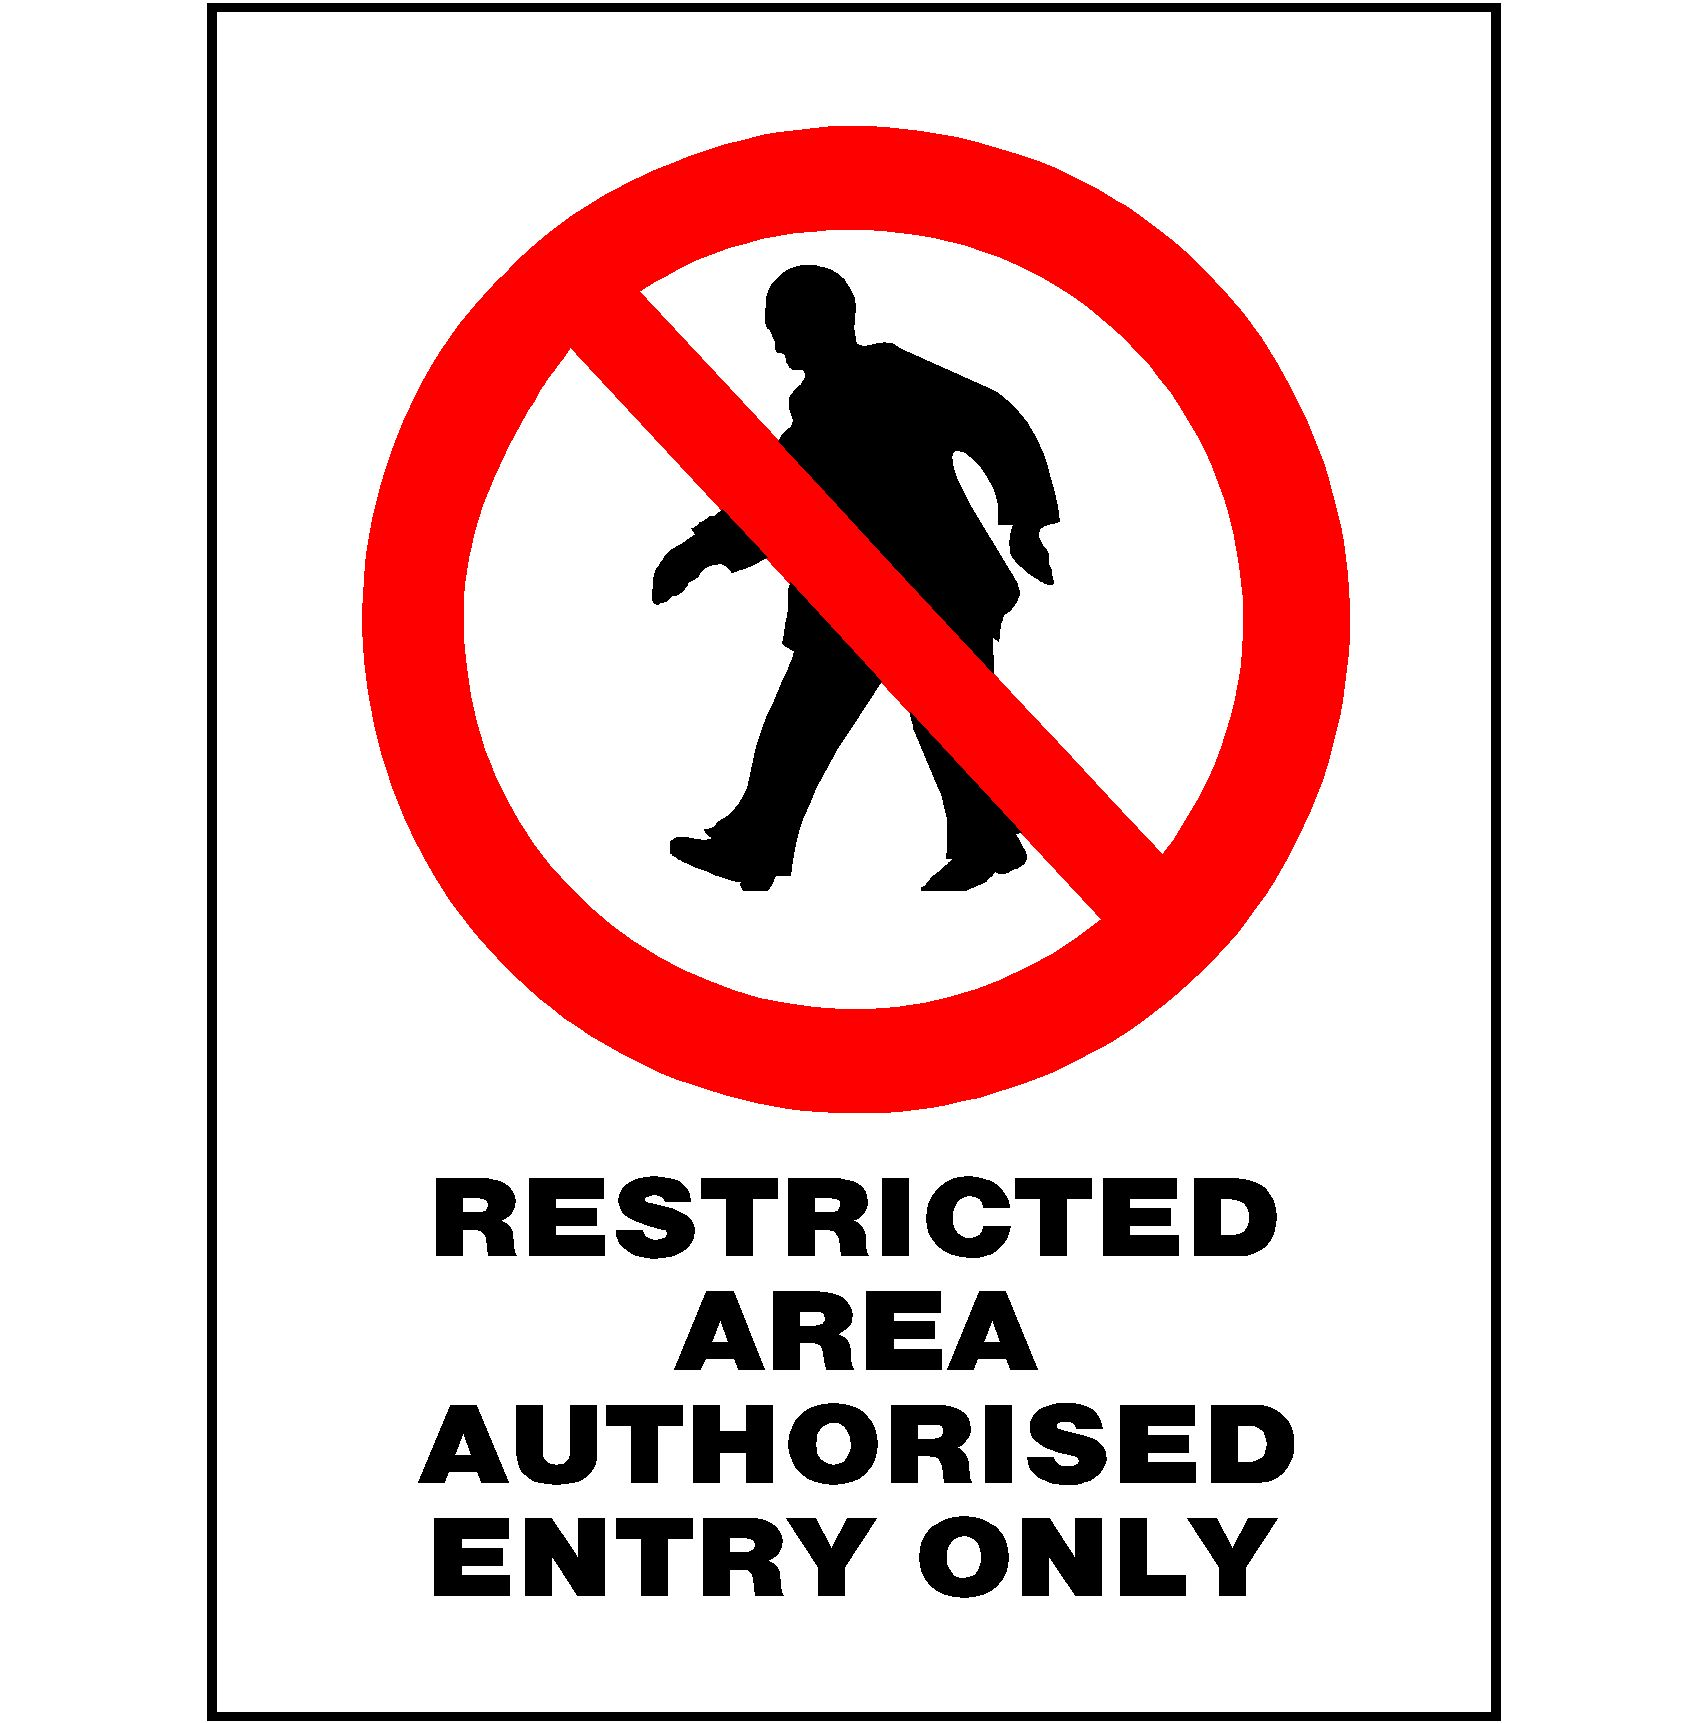 Restricted Area Authorised Entry Only